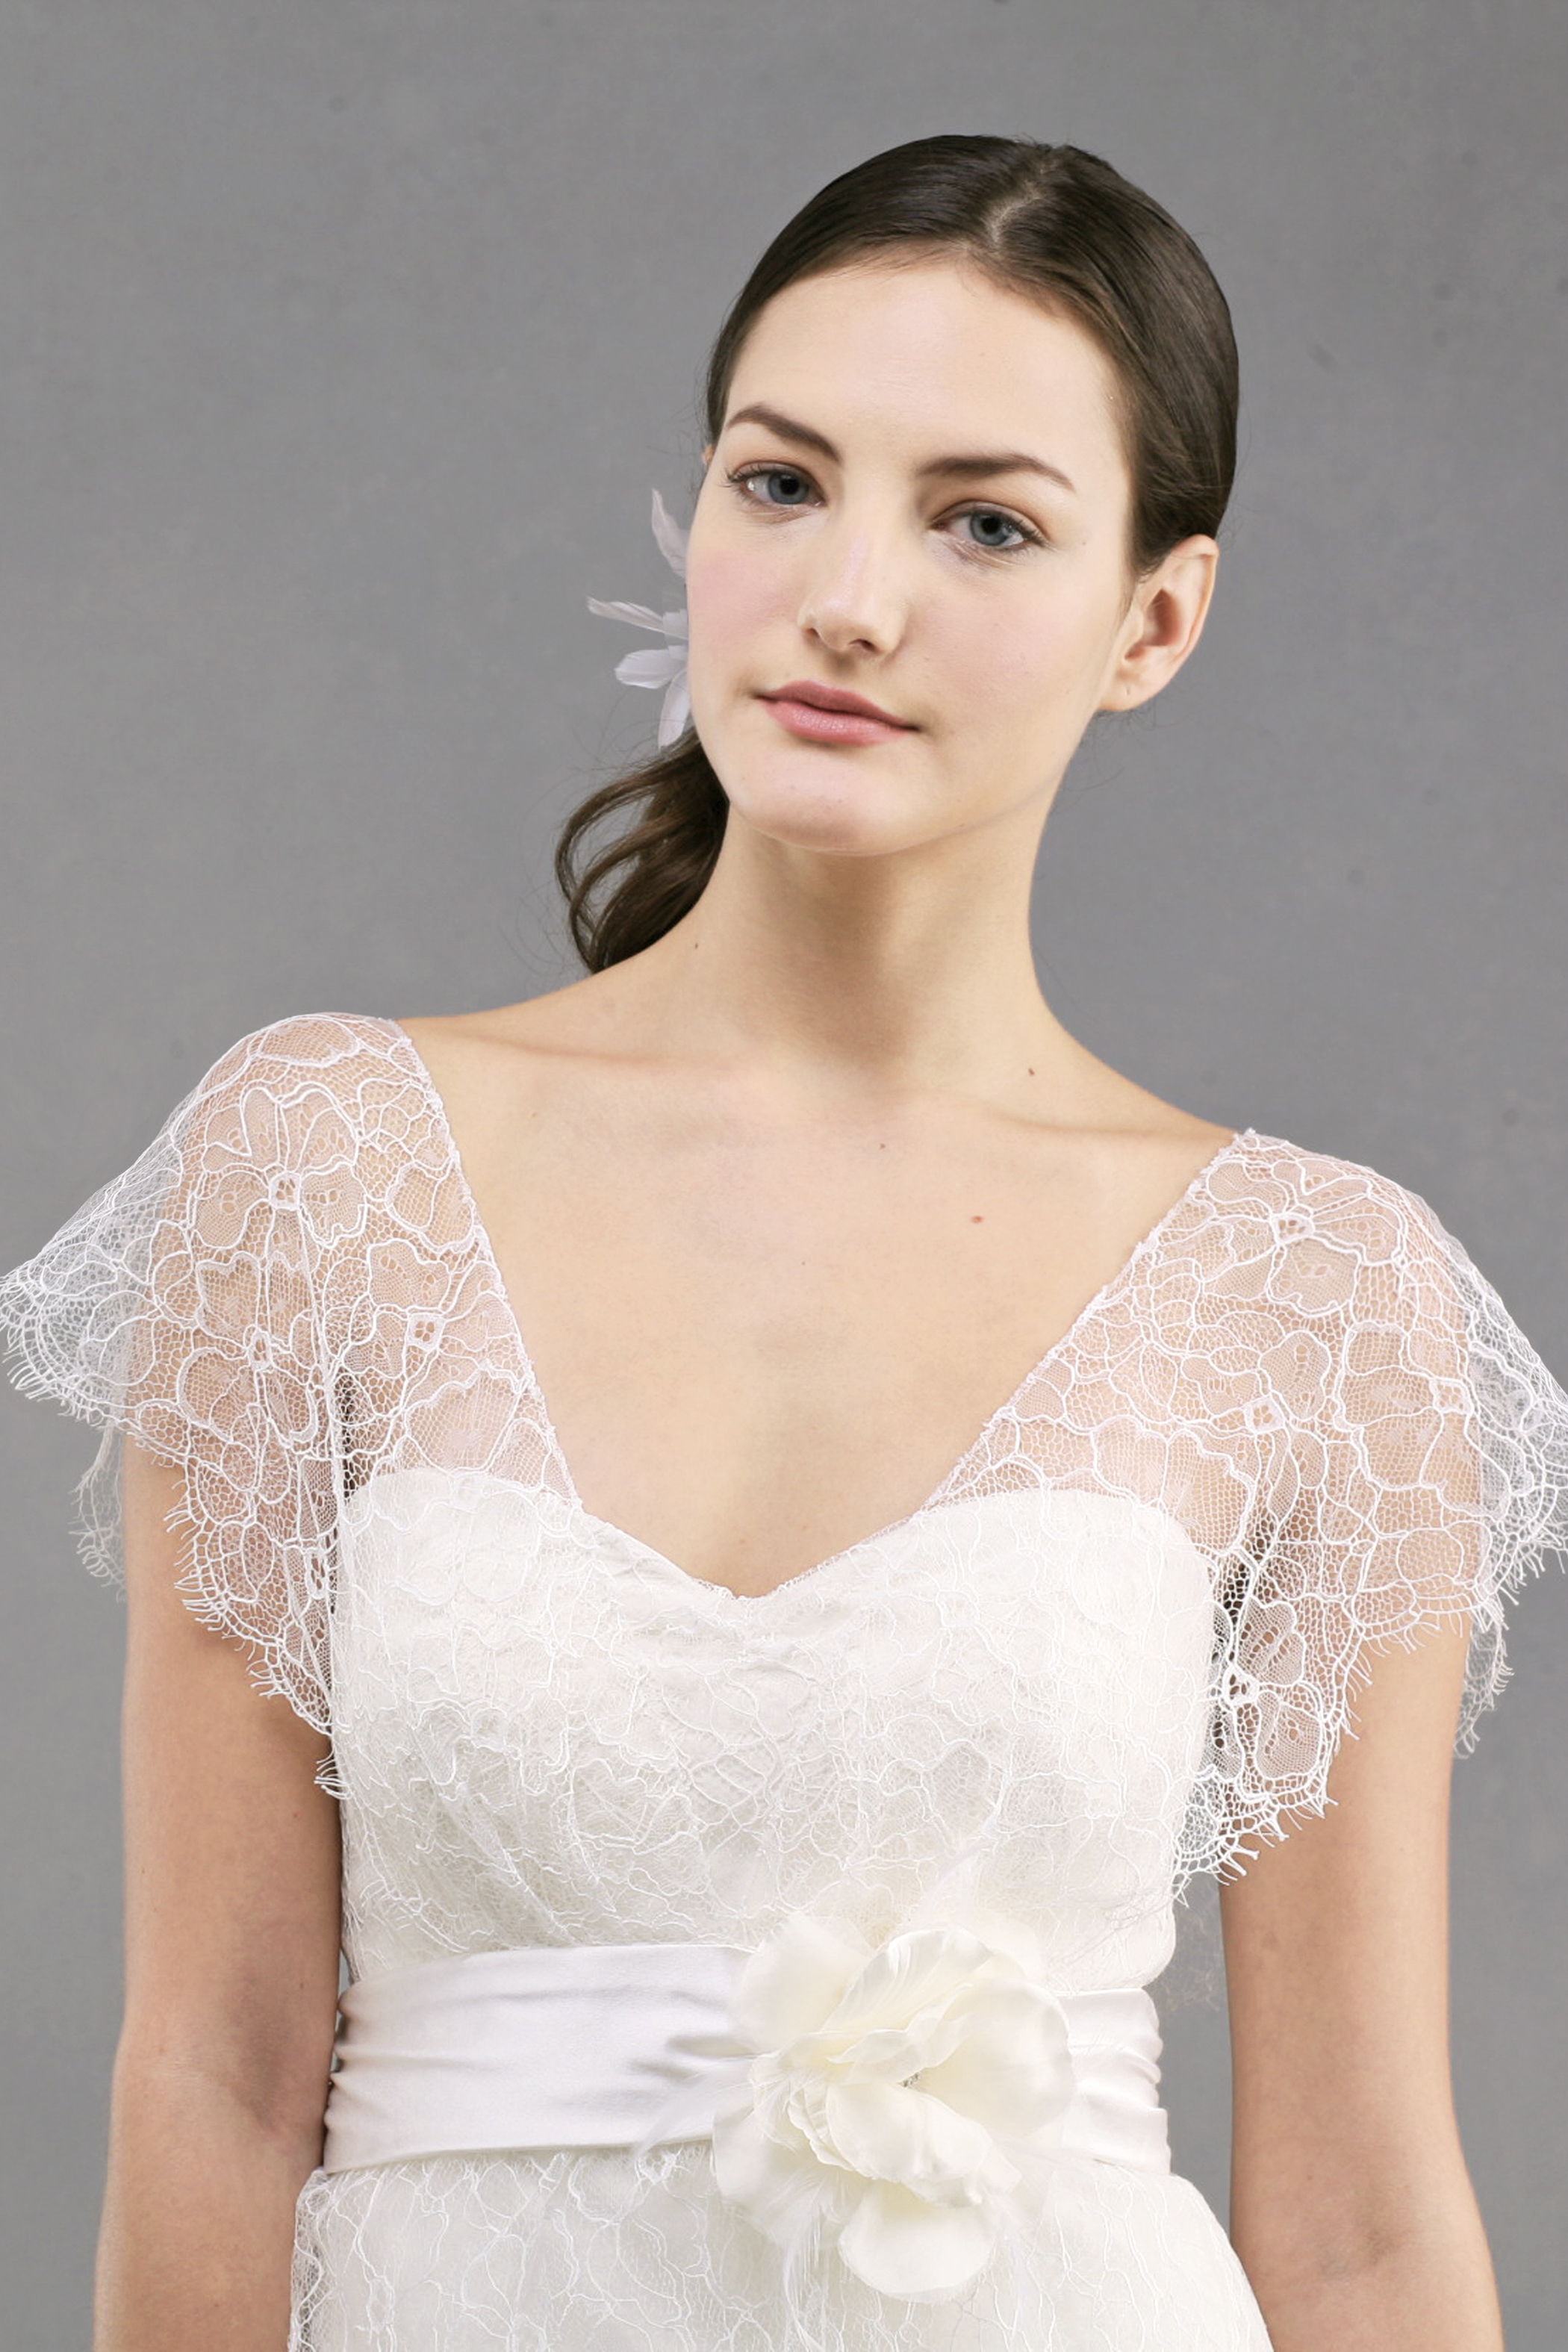 wedding dress by jenny yoo spring 2013 bridal bianca lace ForWedding Dress Lace Bolero